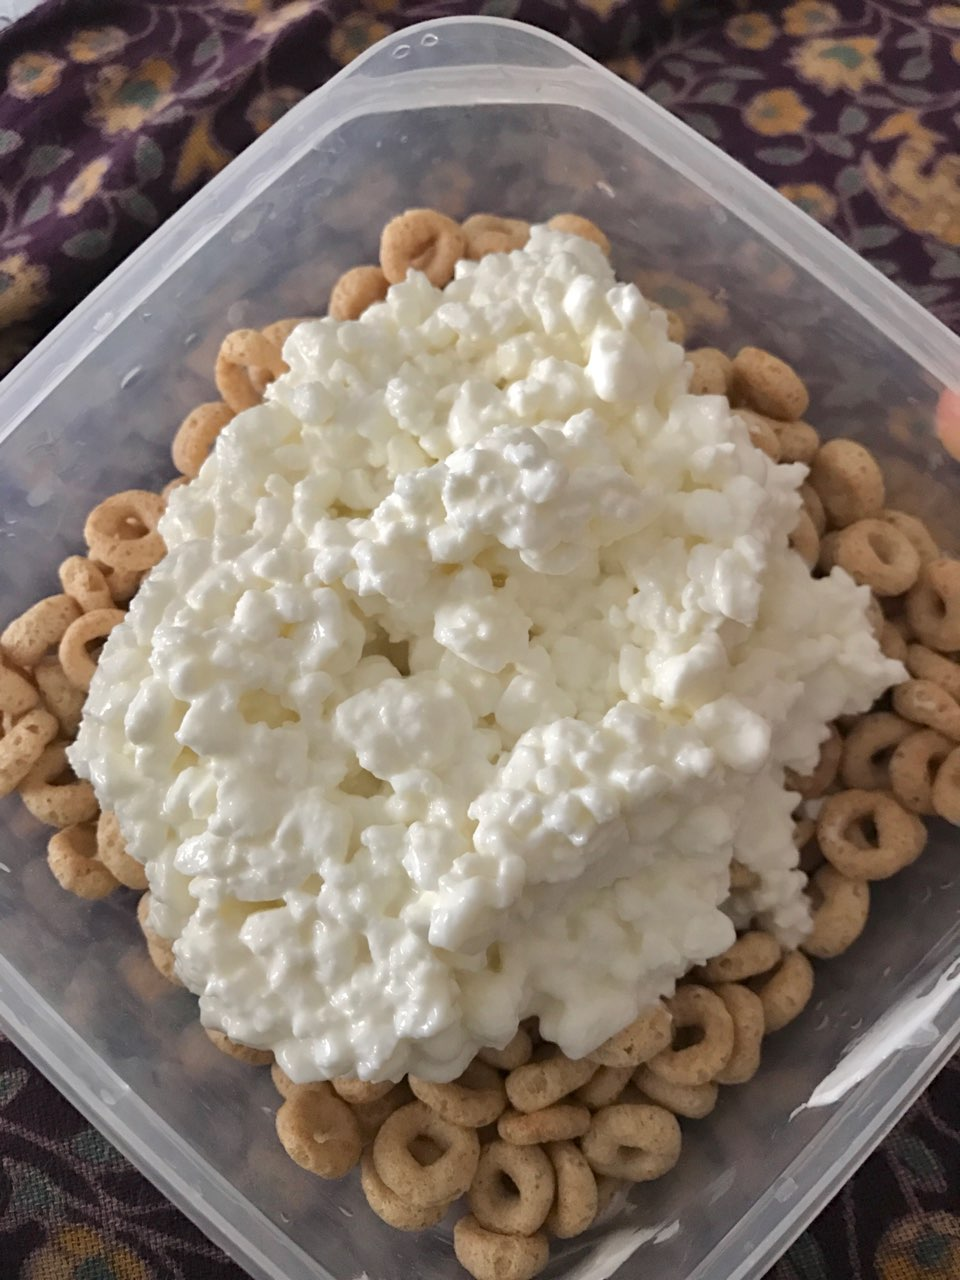 Captivating So Obsessed With Cottage Cheese, I Eat It Every Single Day. 1 Cup No Salt  Added 1%u003d 180 Calories ...u0026 32g Of Protein! 1 Cup Cheeriosu003d 100 C.